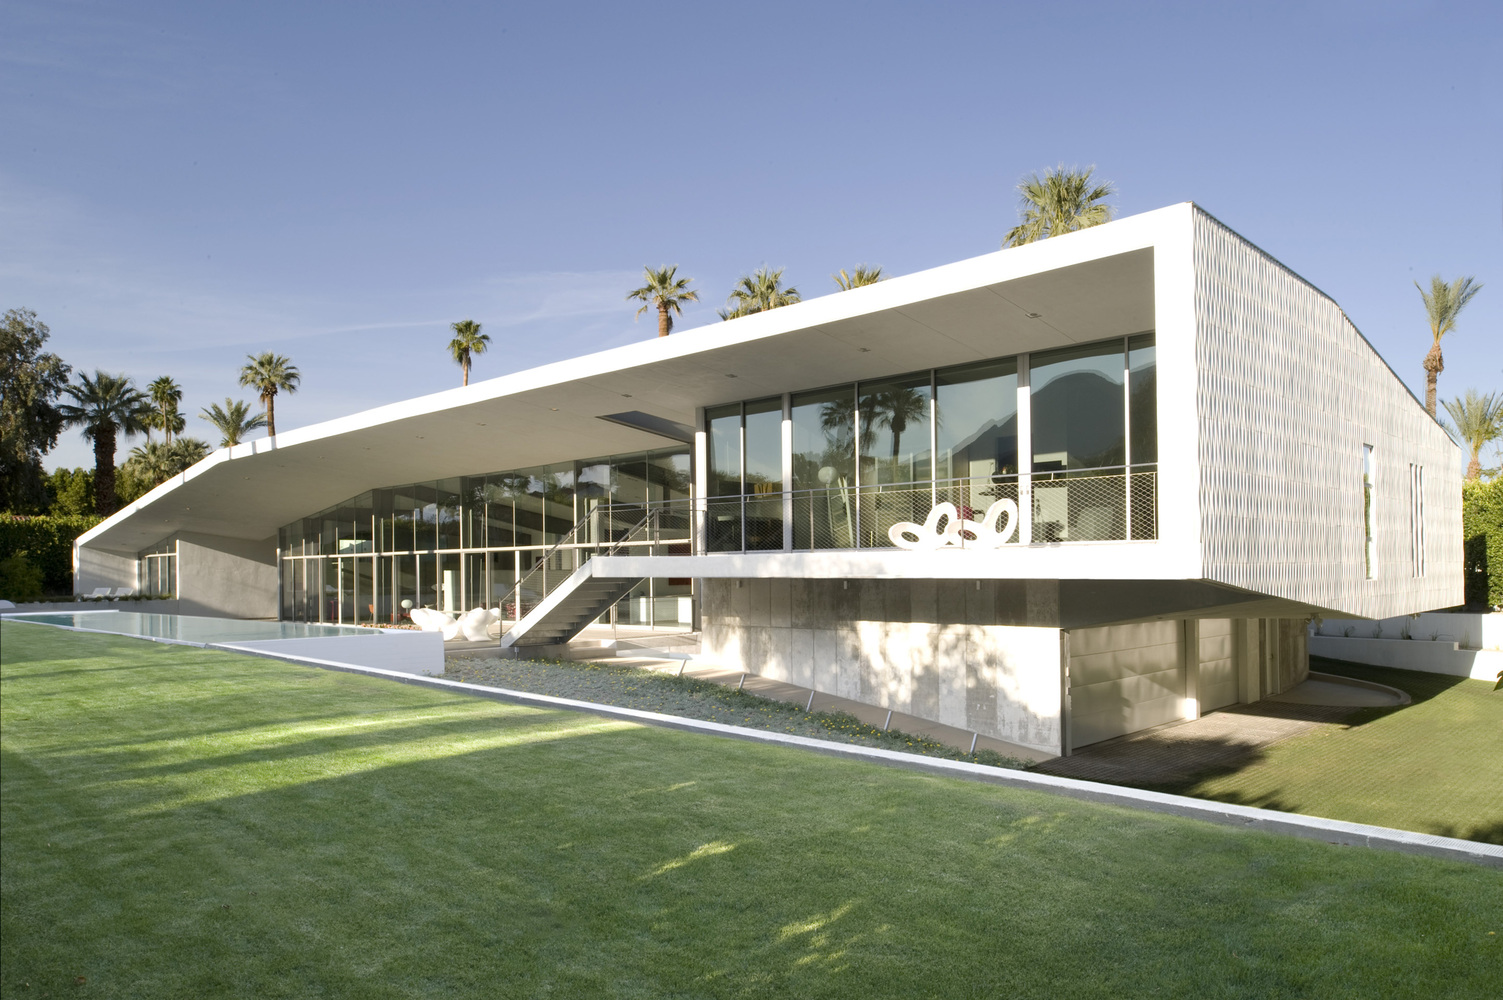 THE DESERT CANOPY HOUSE IN CALIFORNIA BY SANDERS